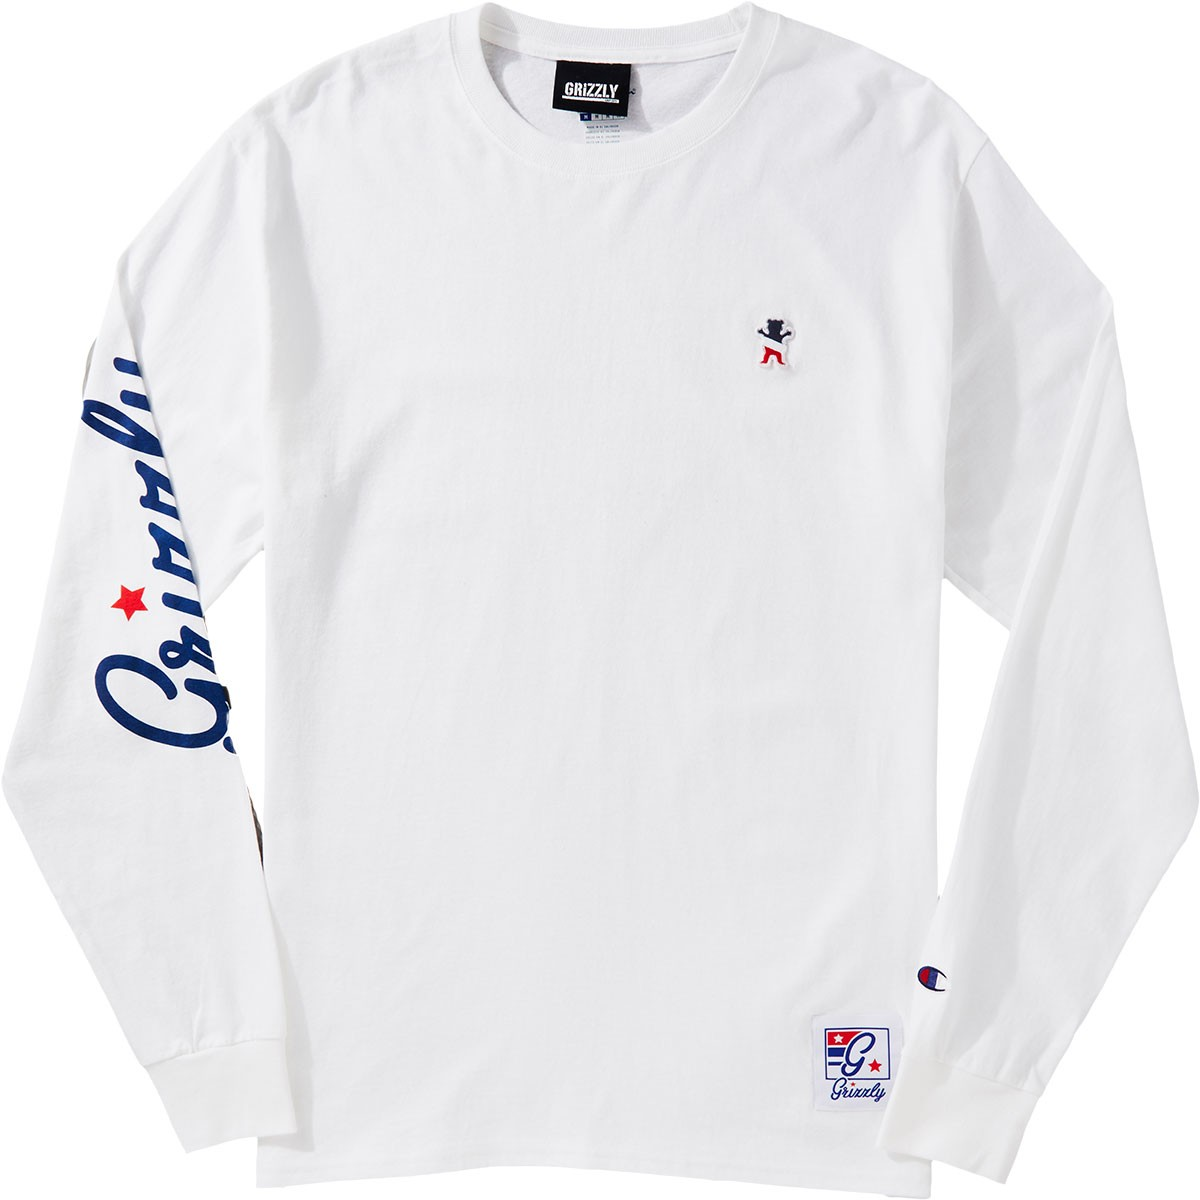 c05ed05df52e Grizzly X Champion Behind The Arc Longsleeve T-Shirt - White